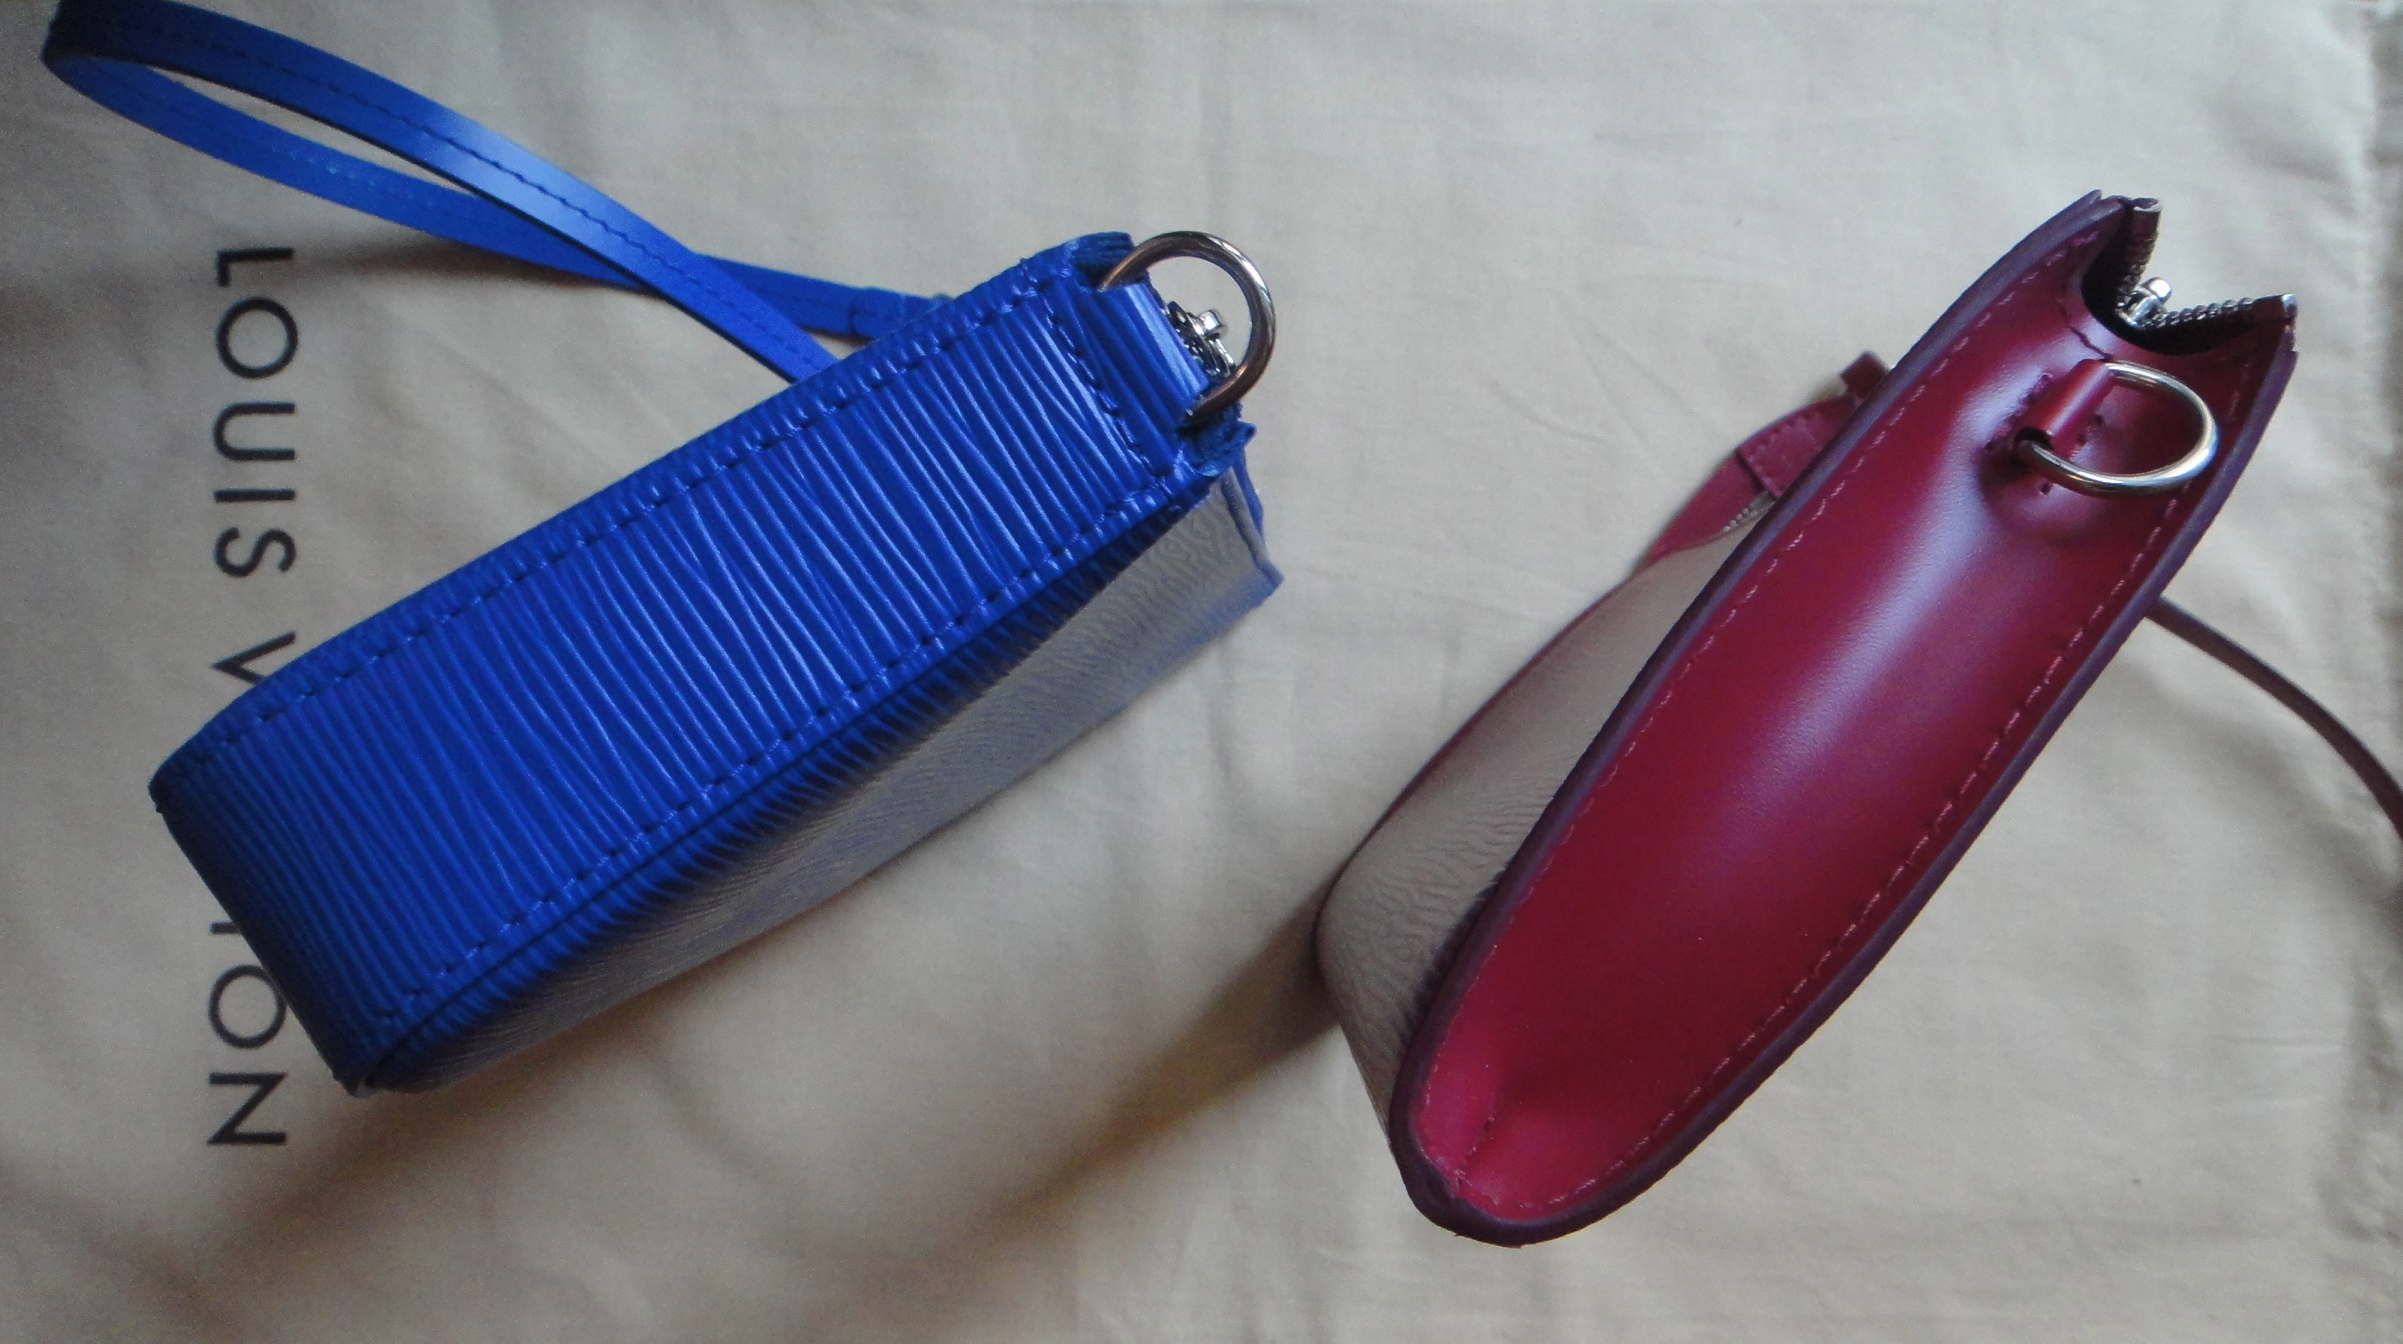 LV Pochette Accessoires left: NEW MODEL in FIGUE, right: OLD MODEL in FUCHSIA